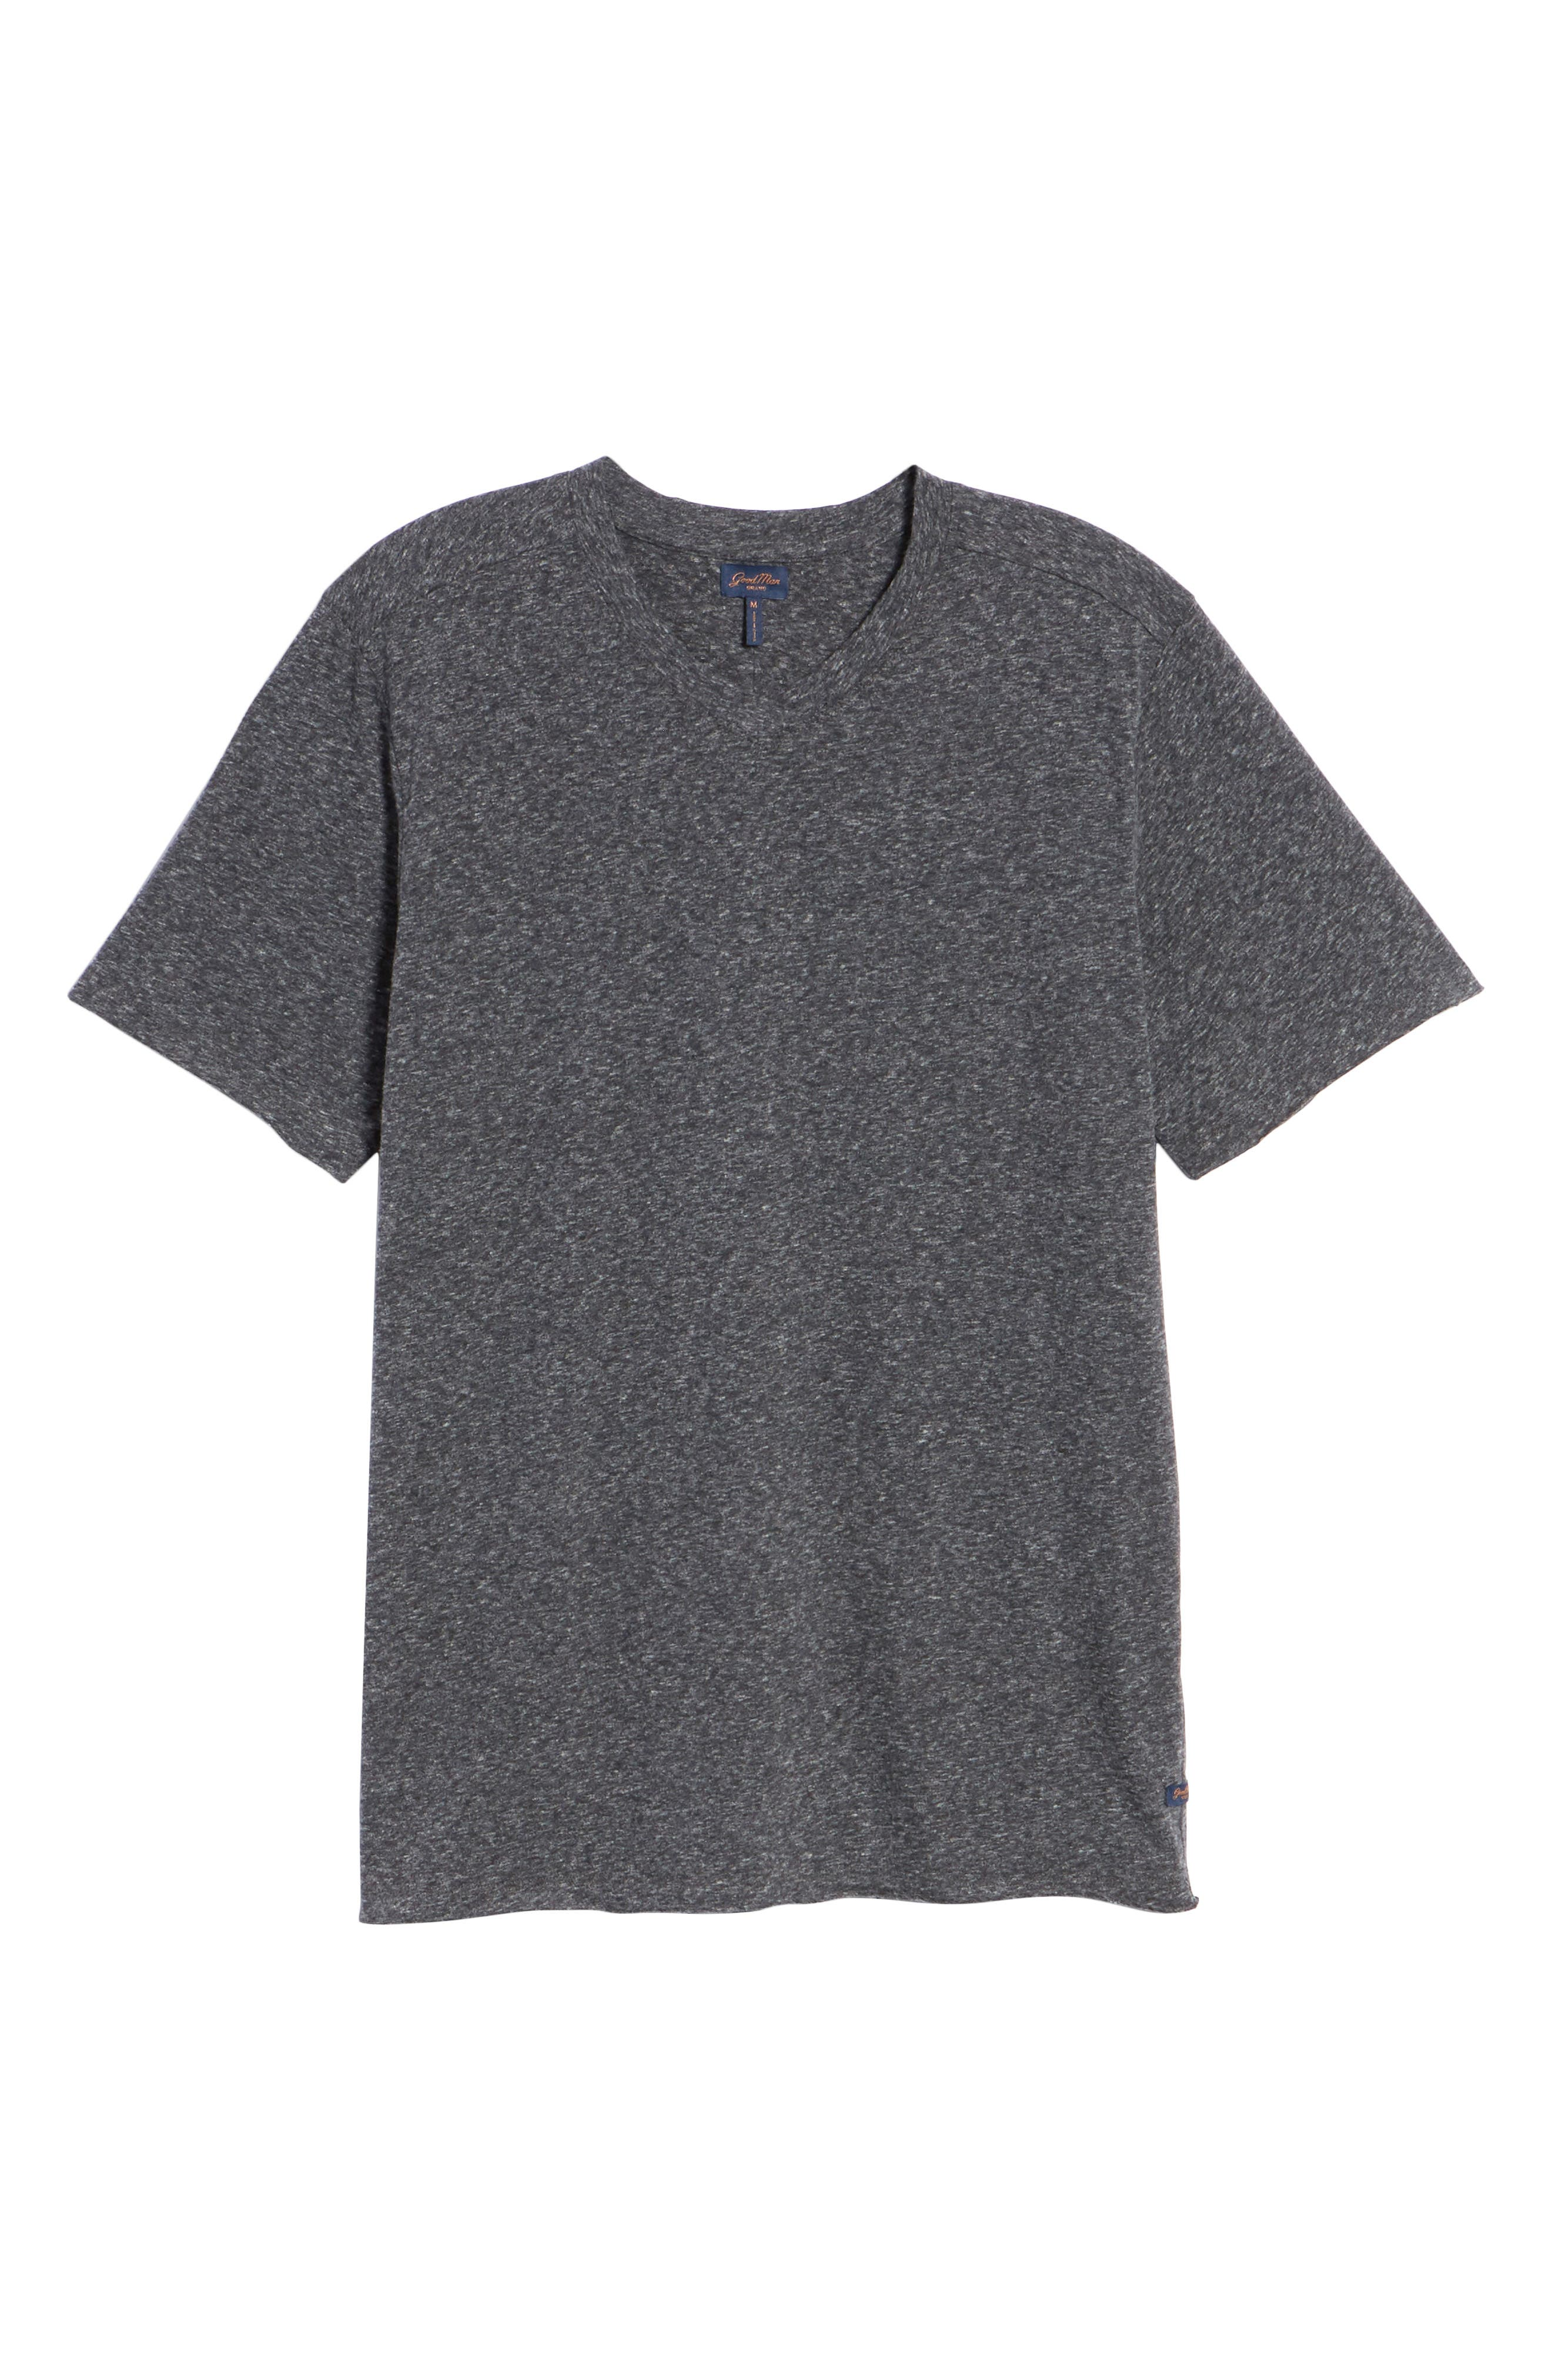 Slim Fit V-Neck T-Shirt,                             Alternate thumbnail 6, color,                             032